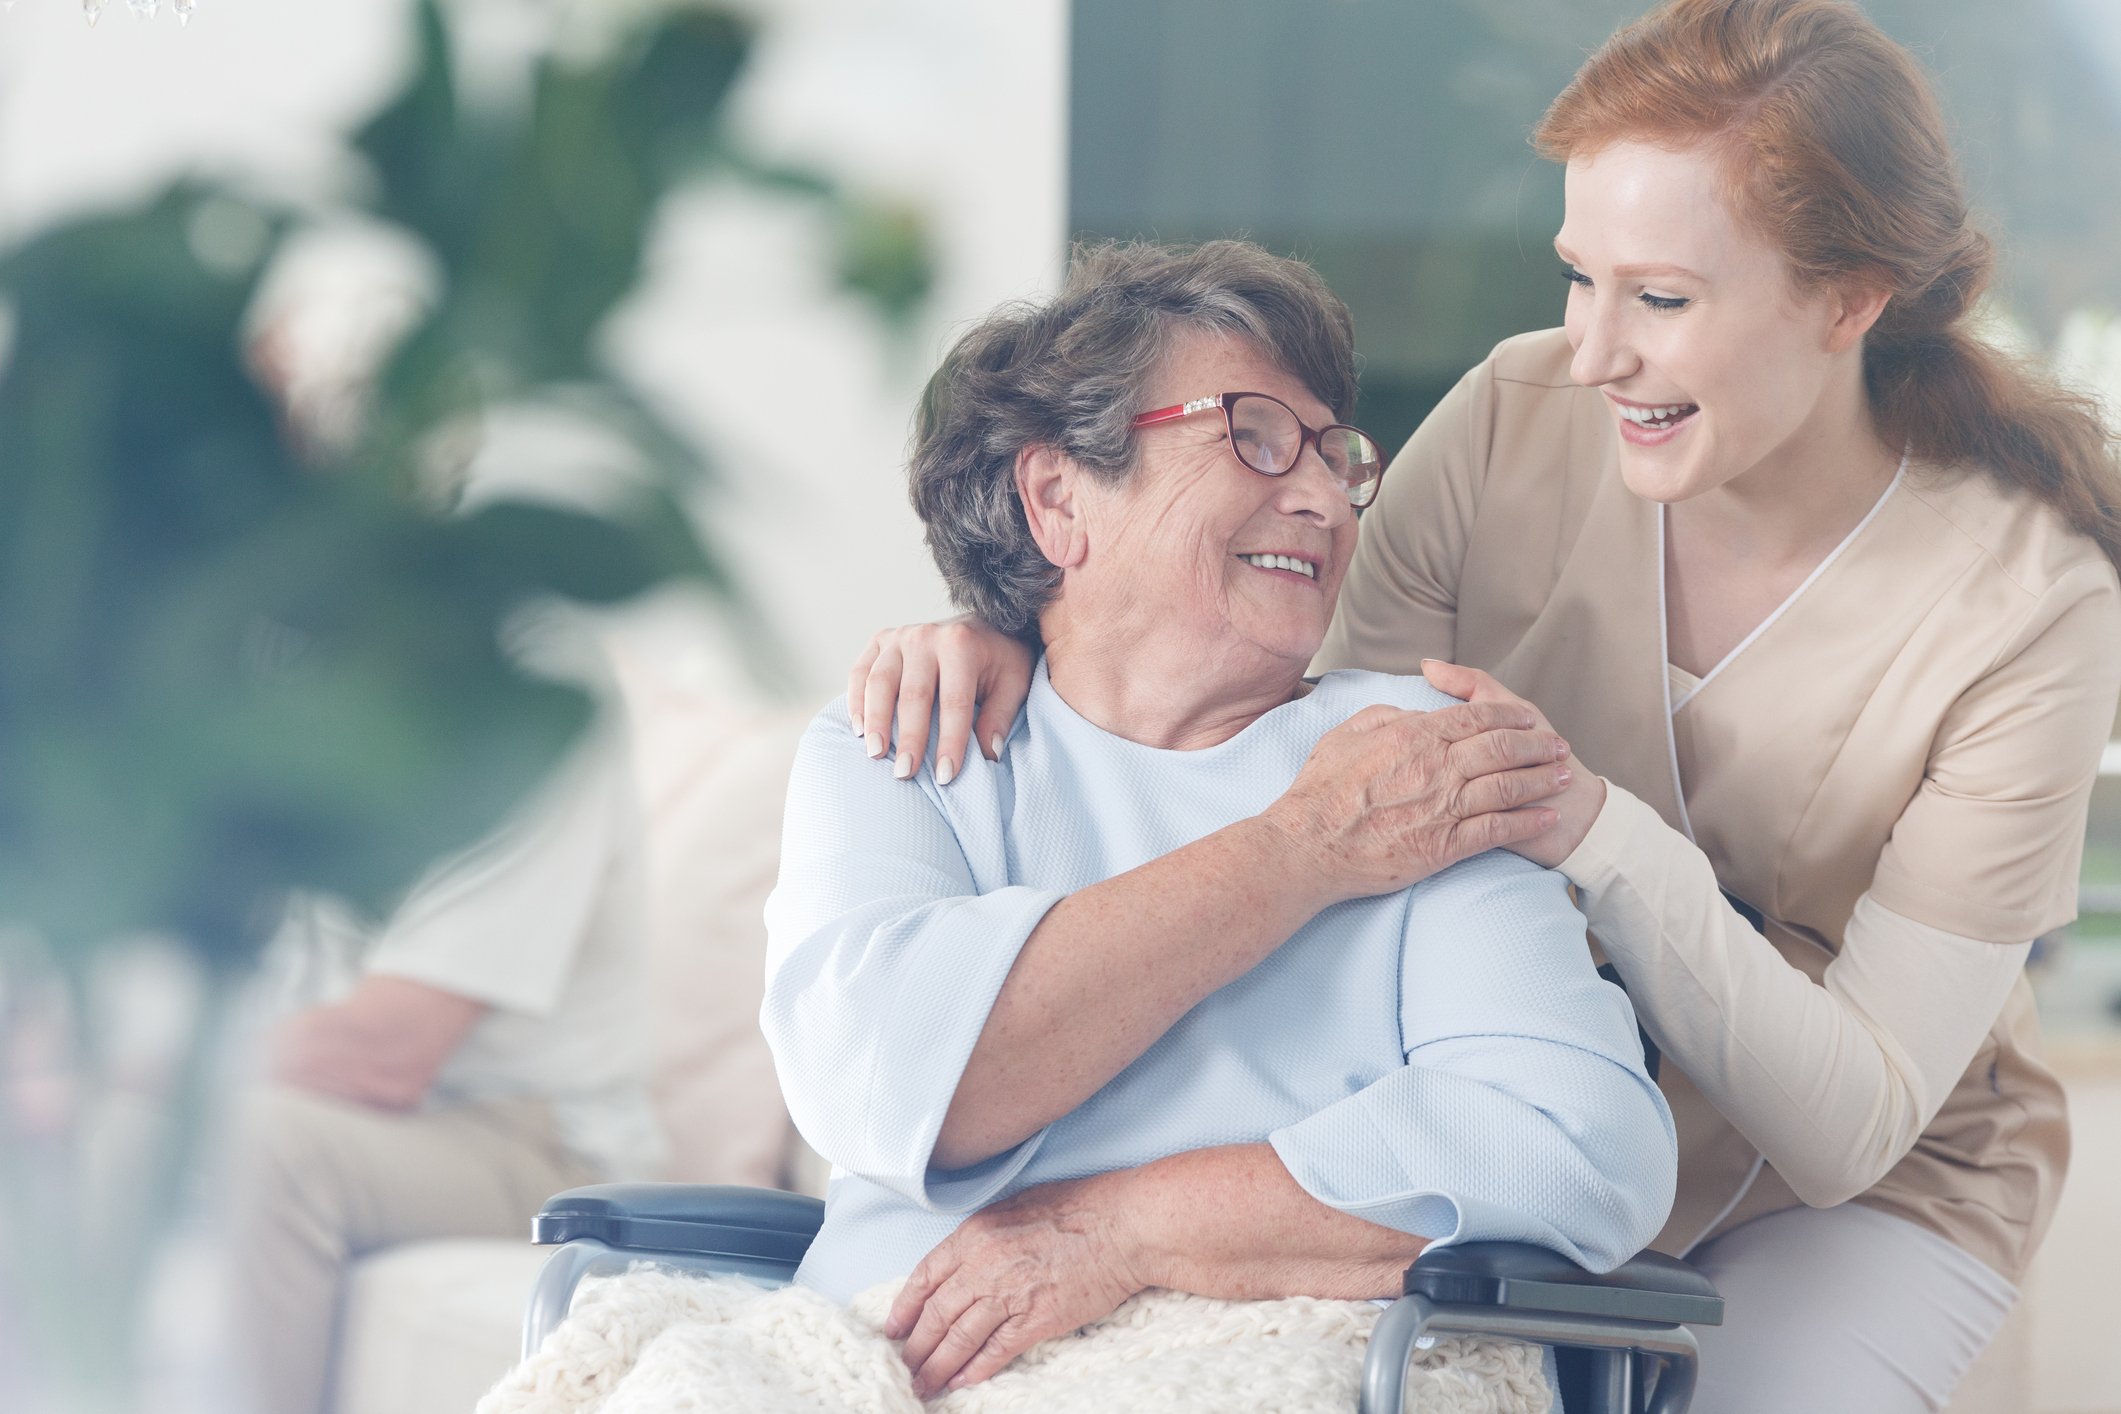 senior in assisted living home happily chats with caregiver